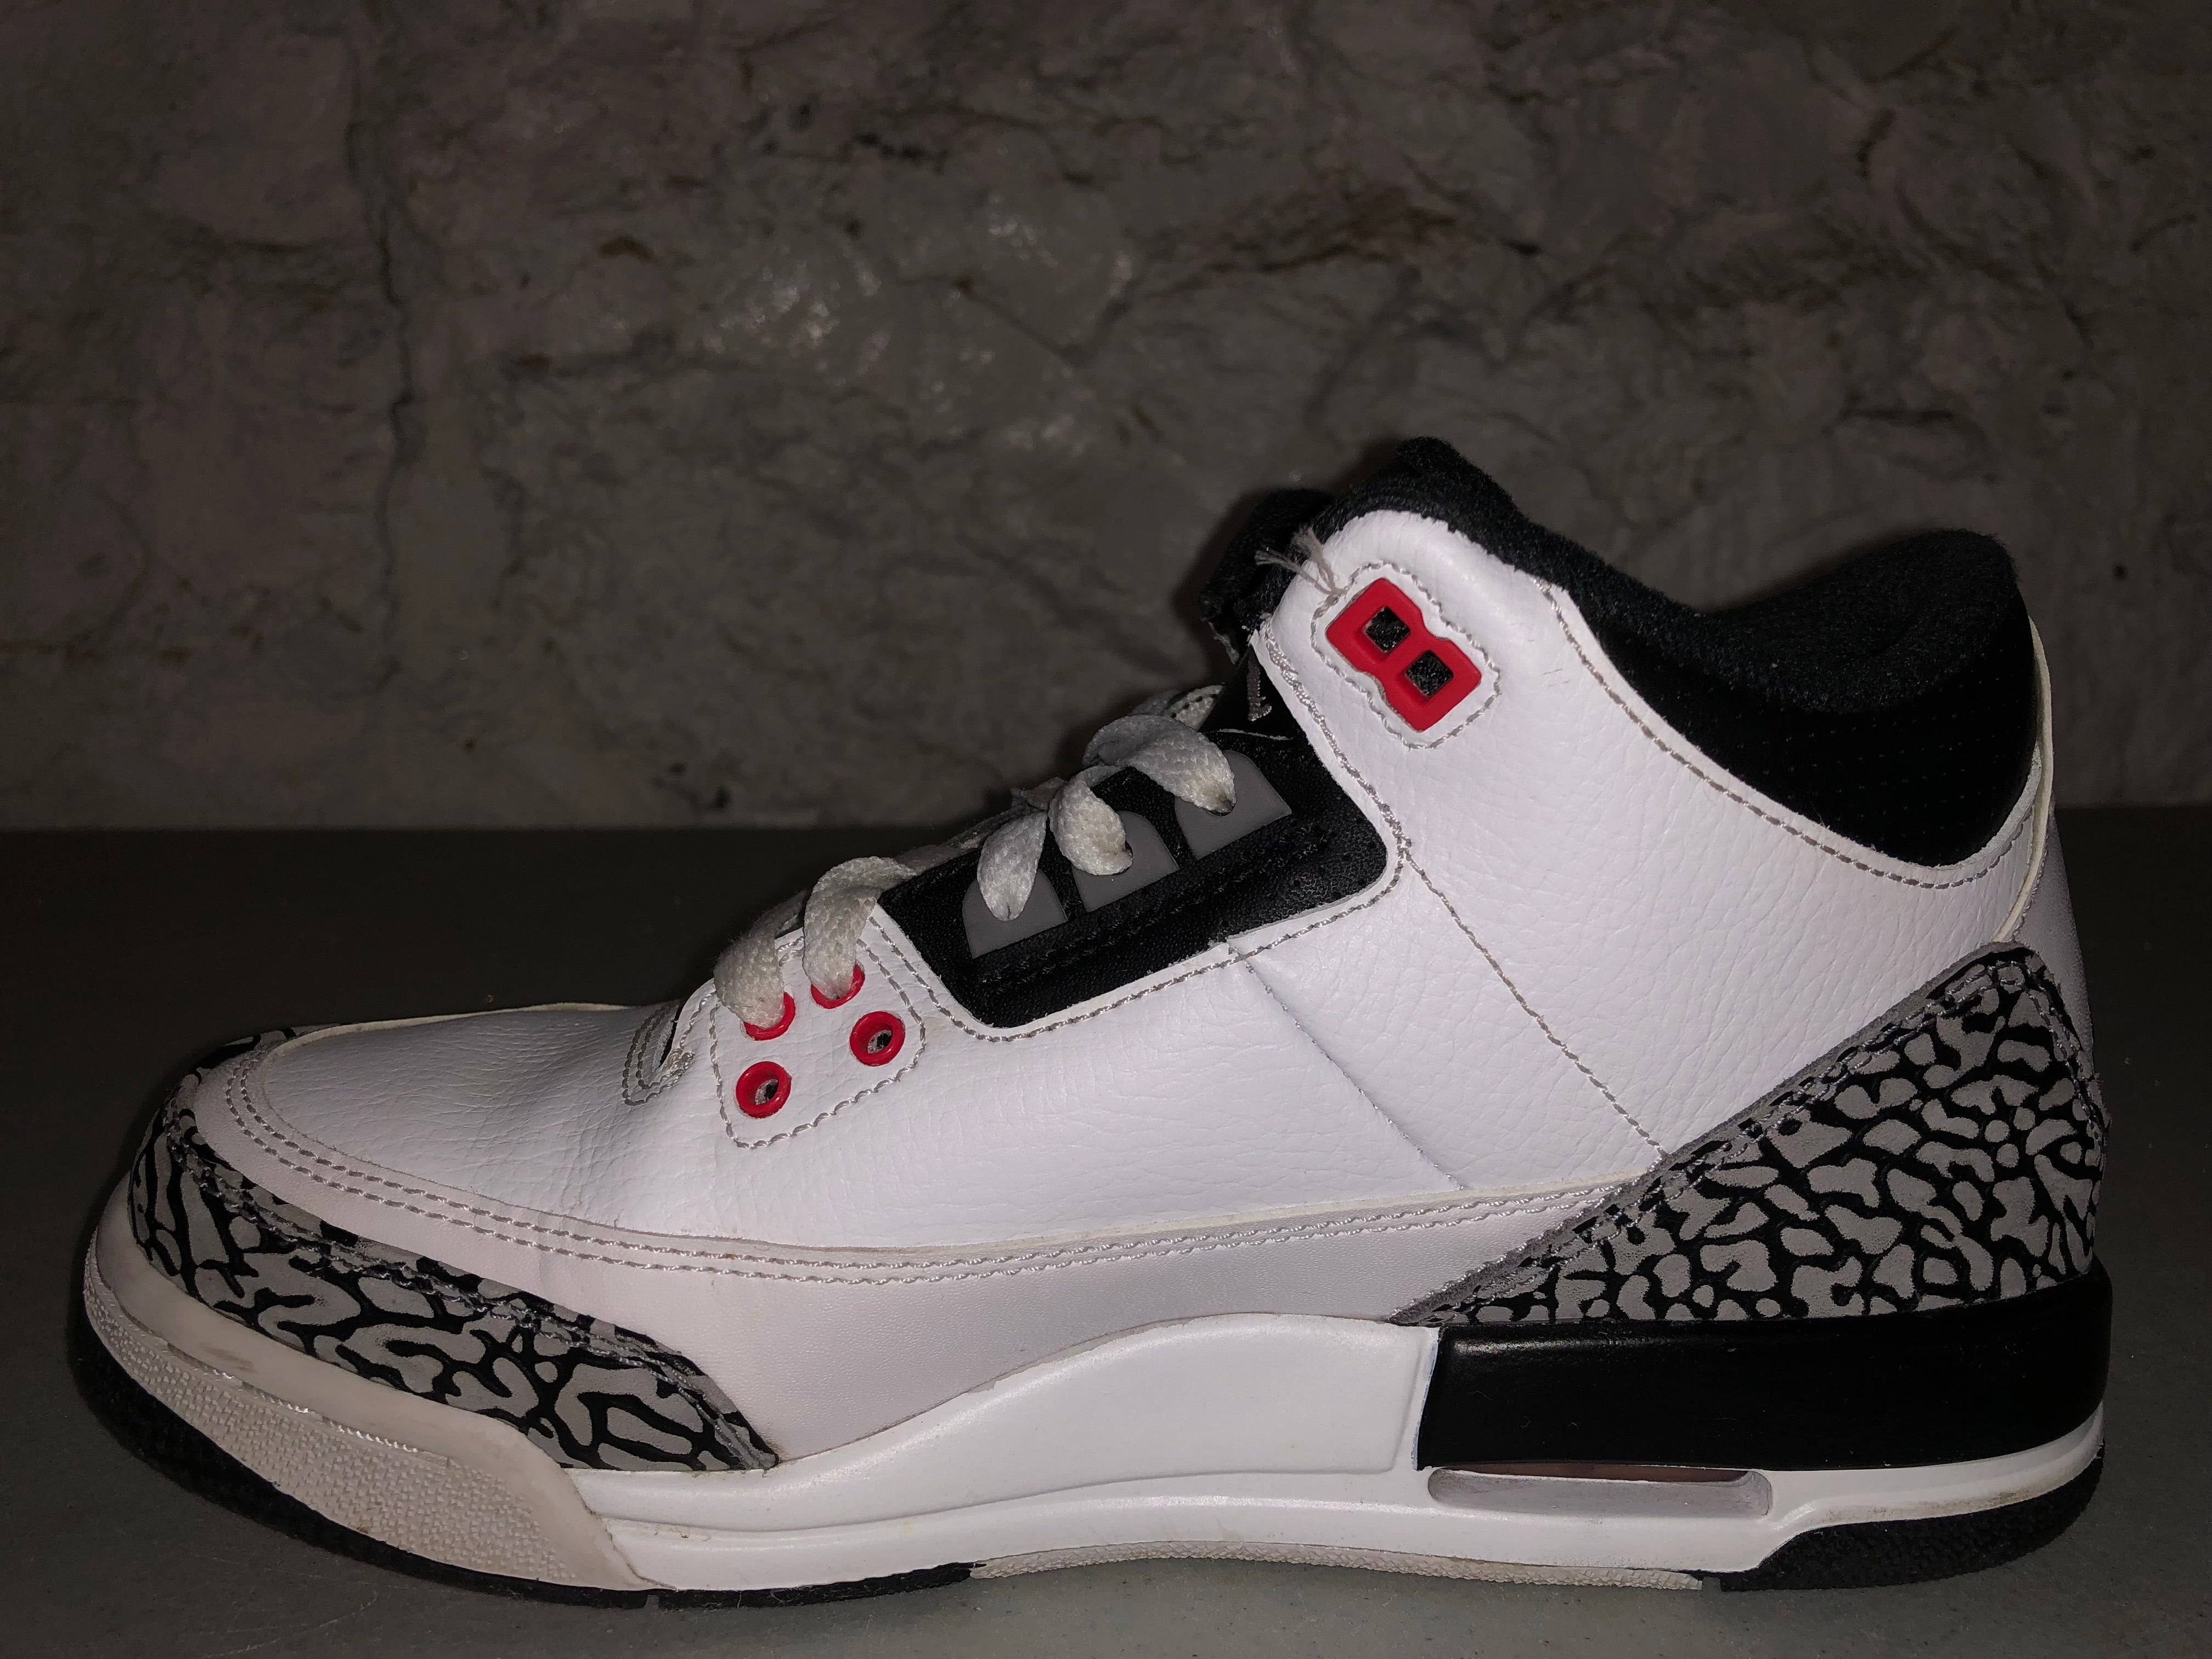 sports shoes 696e0 48b25 ... coupon code for size 5.5y air jordan 3 infrared d7529 f2449